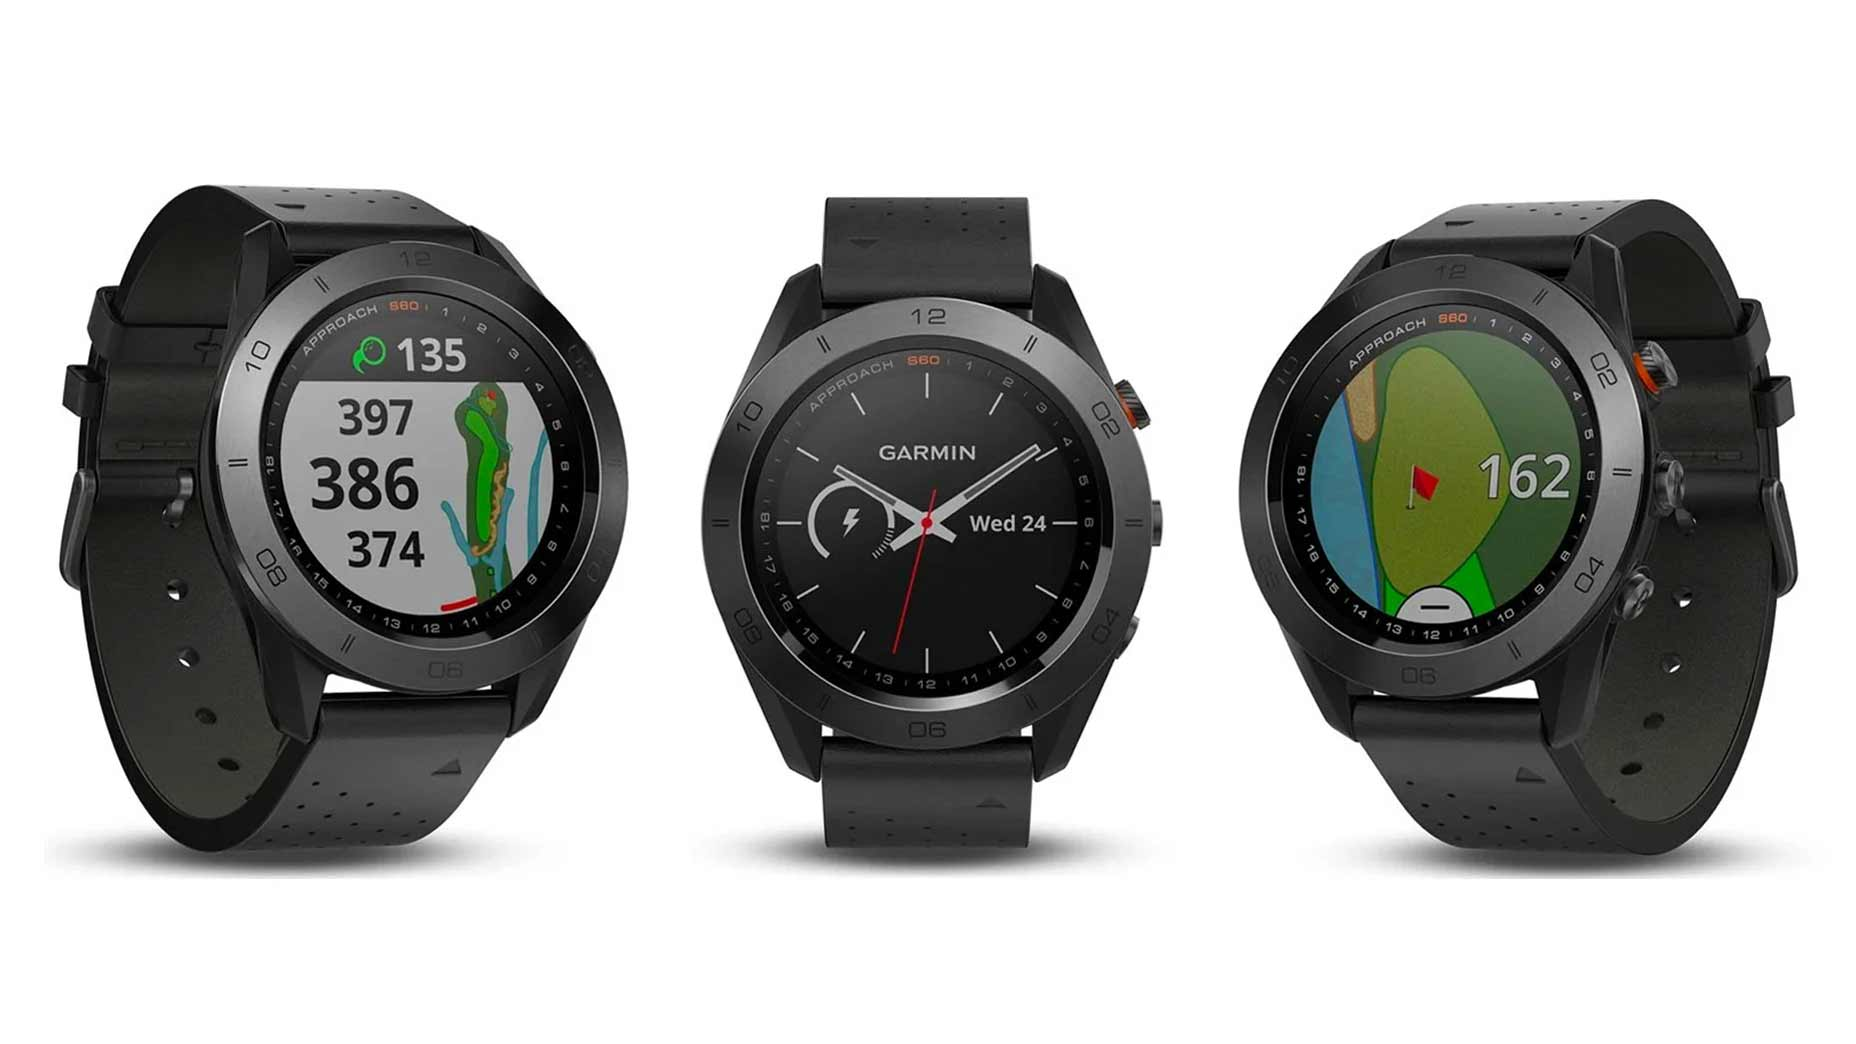 Garmin GPS watch